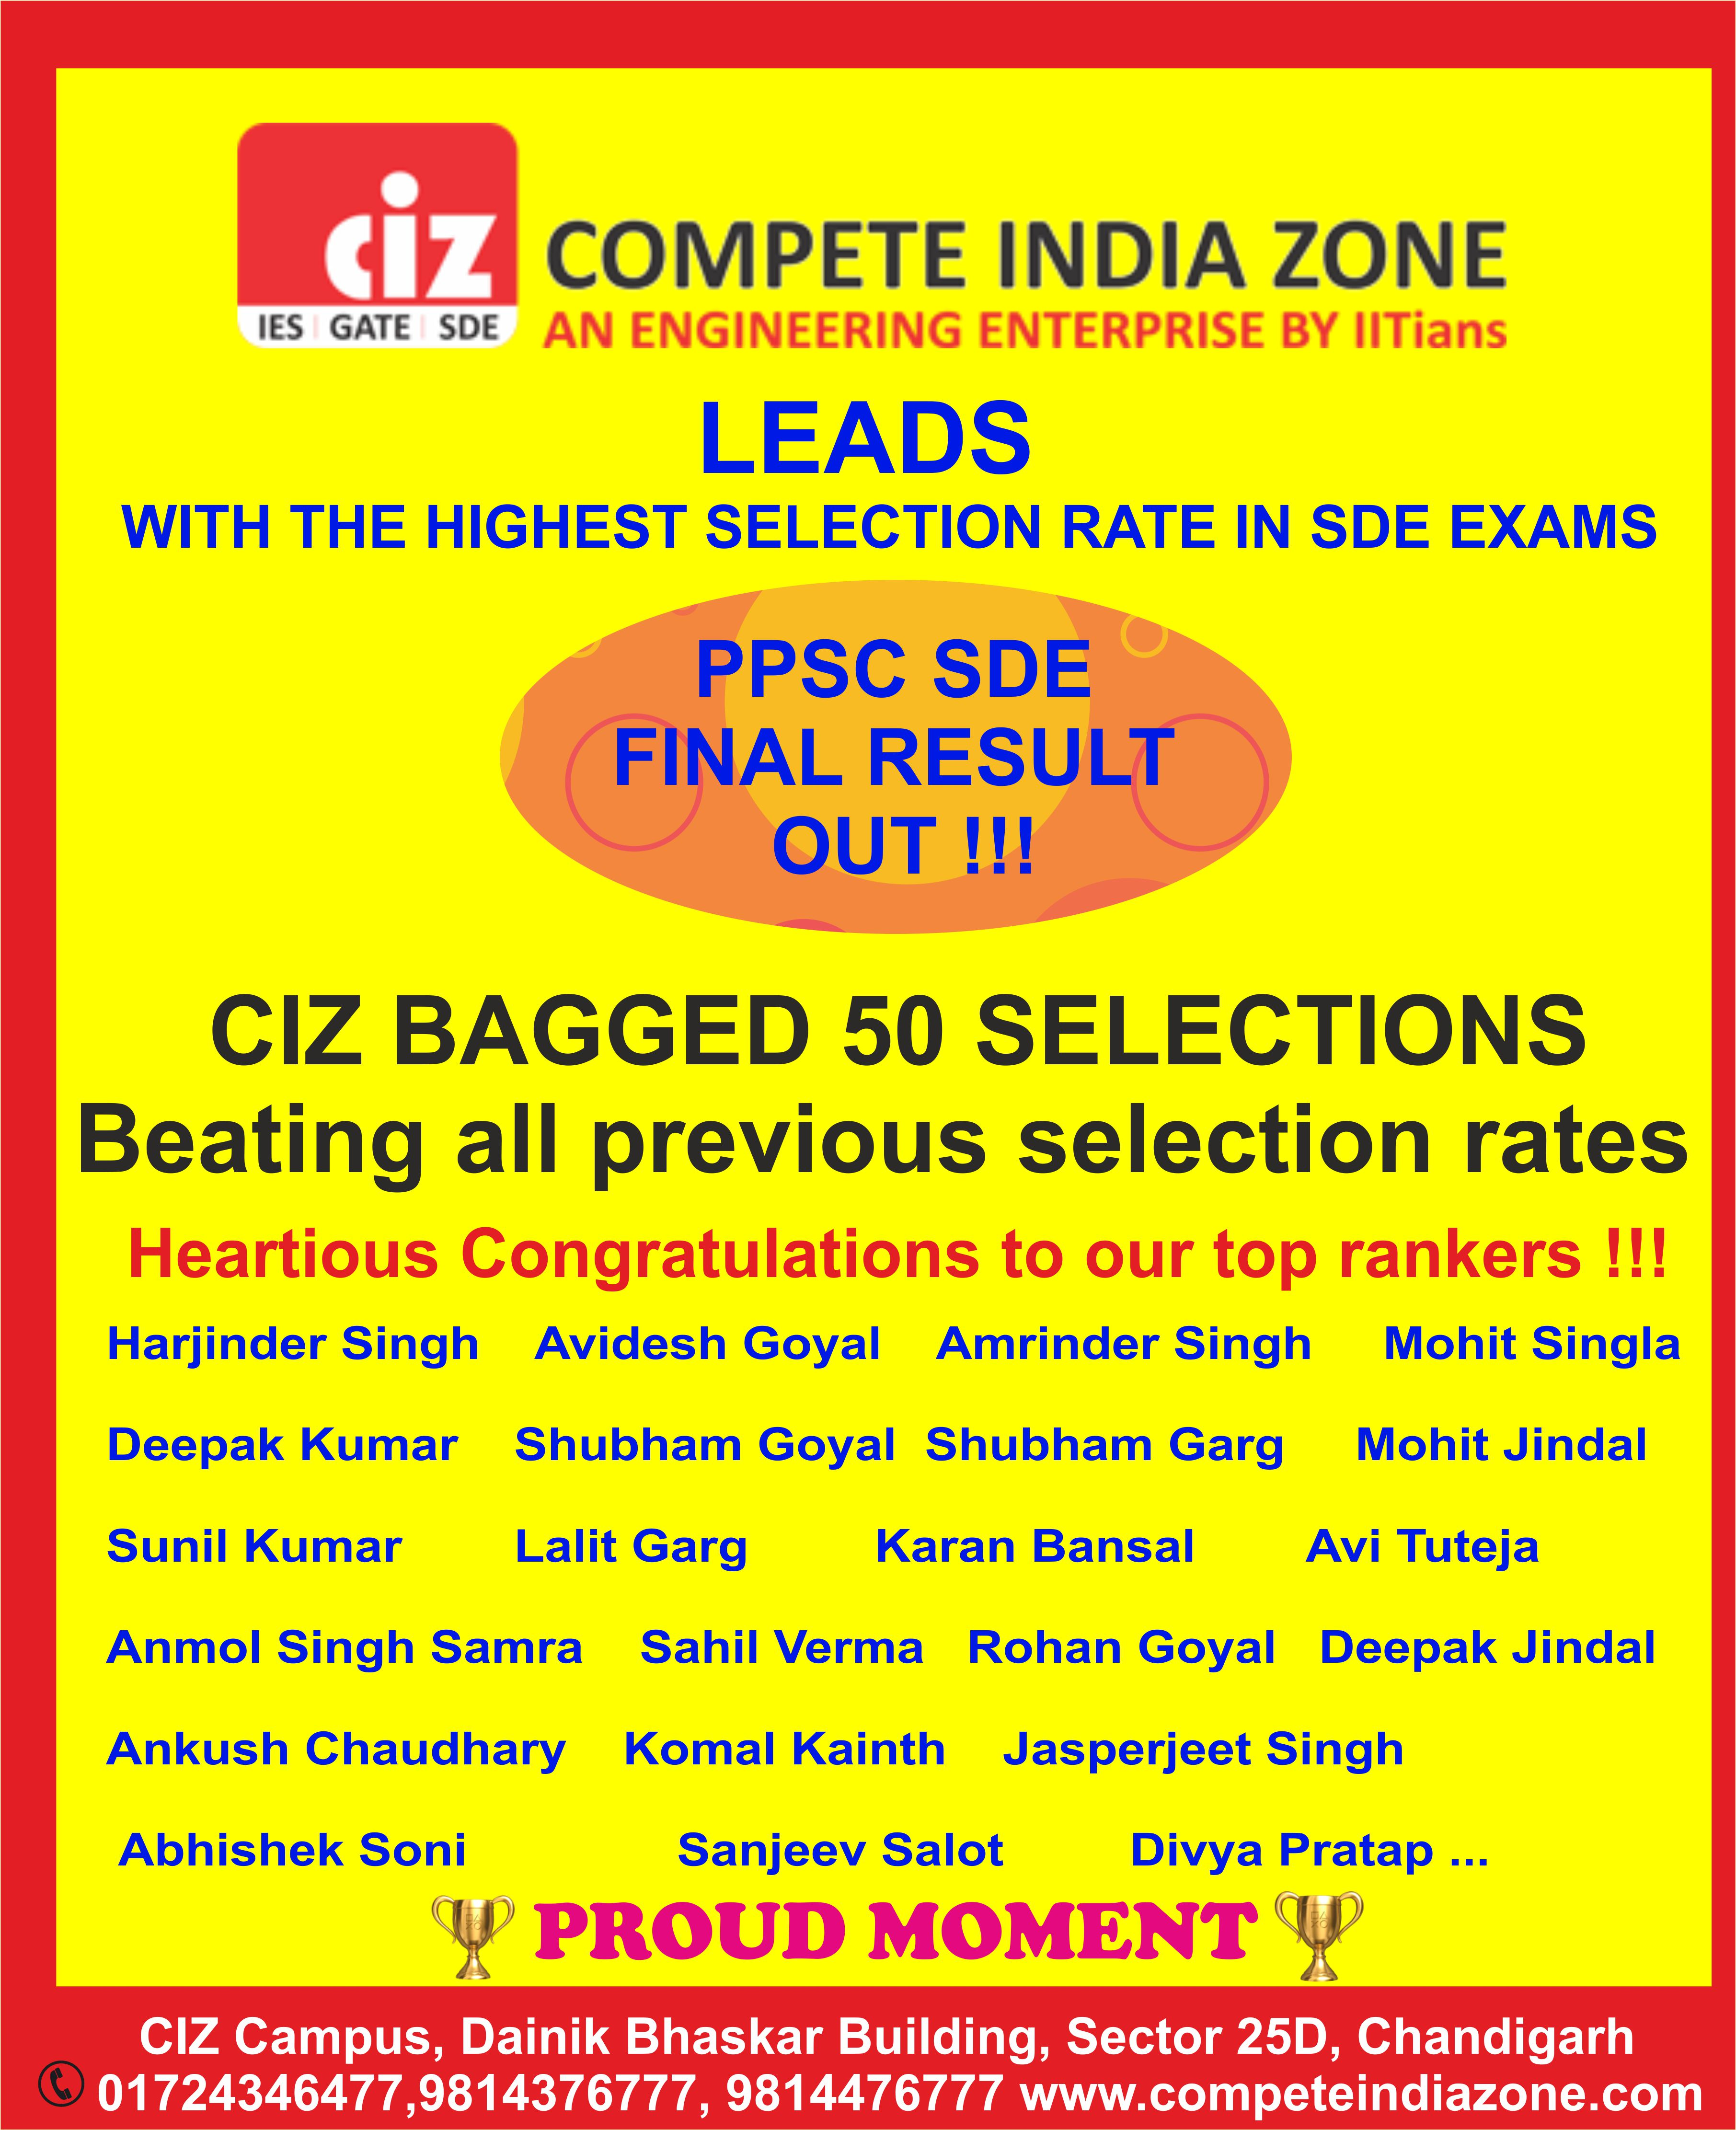 PPSC Best Coaching for SDO JE in Chandigarh